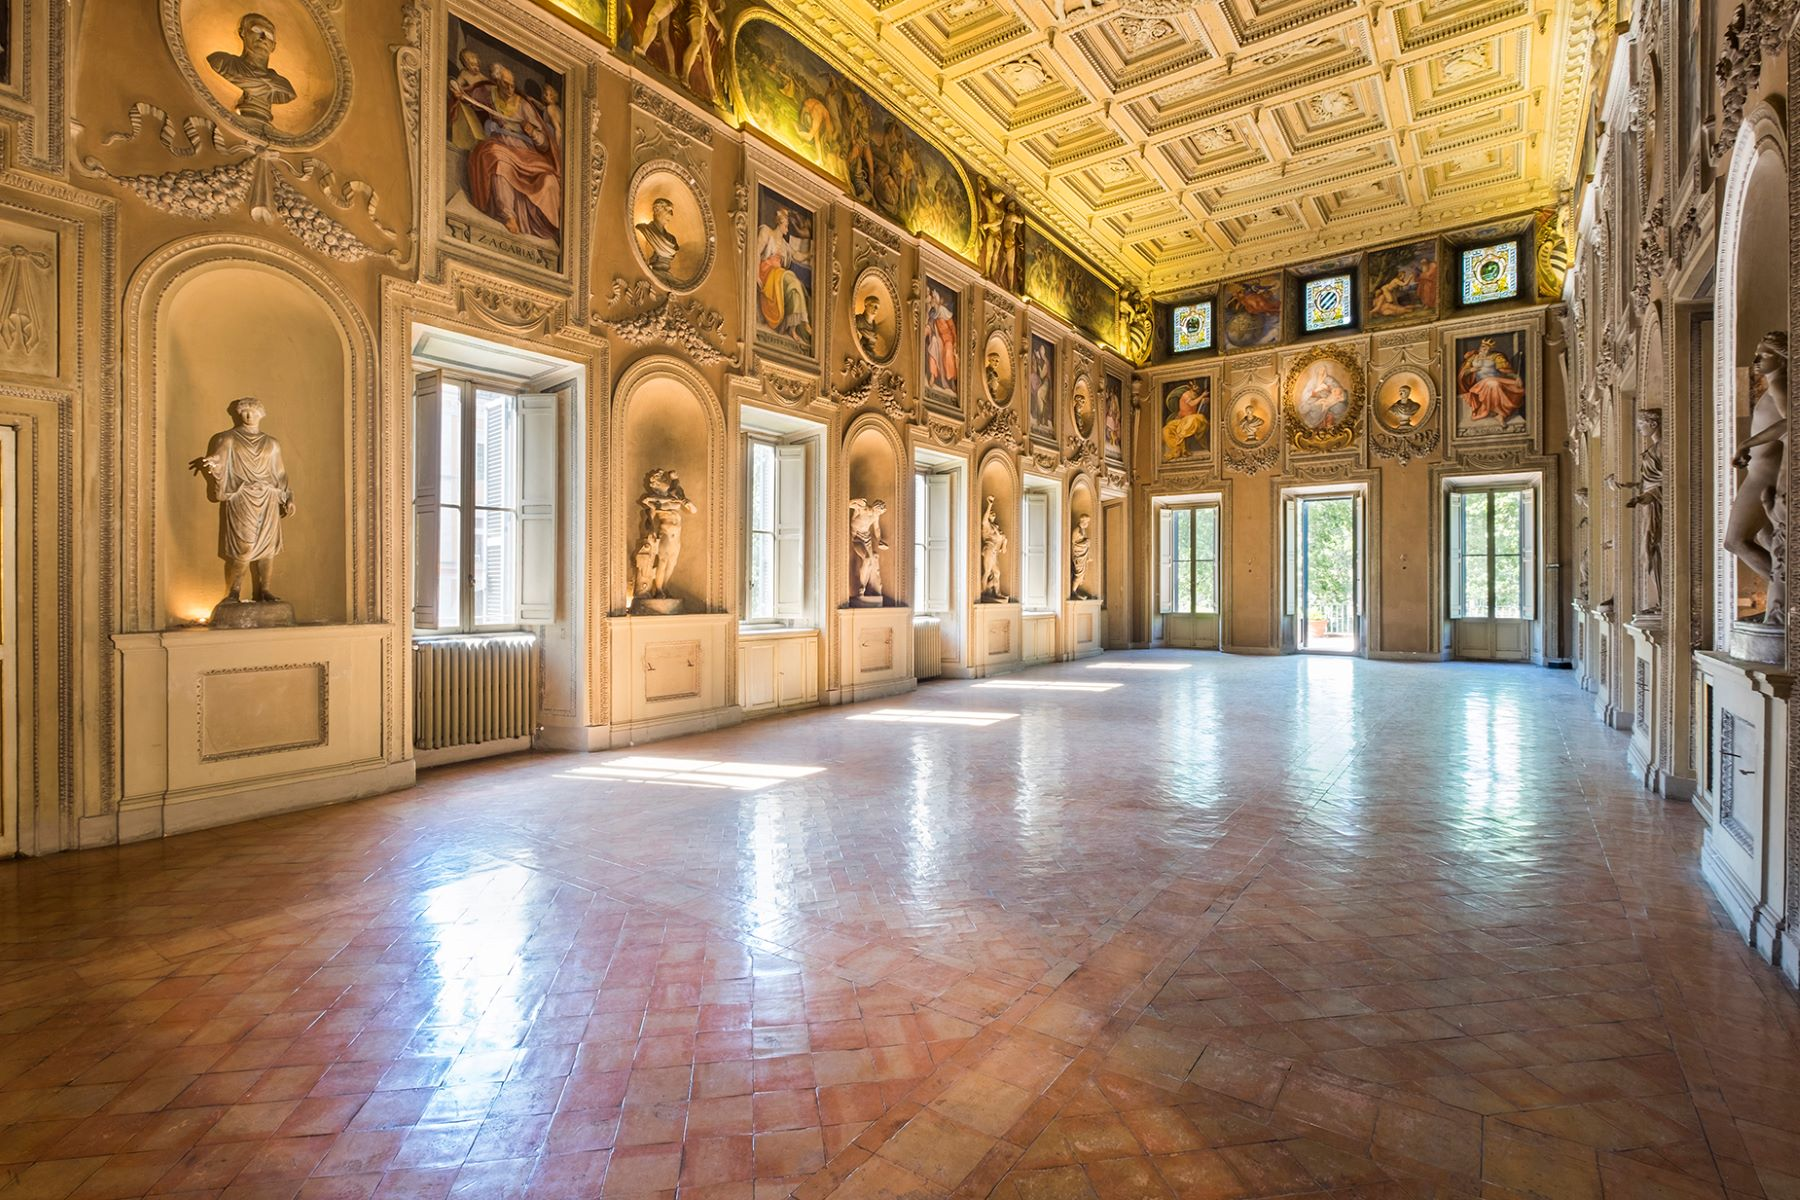 Property for Sale at Palazzo Sacchetti, a pearl of the late reinassance in the heart of Rome Rome, Rome Italy